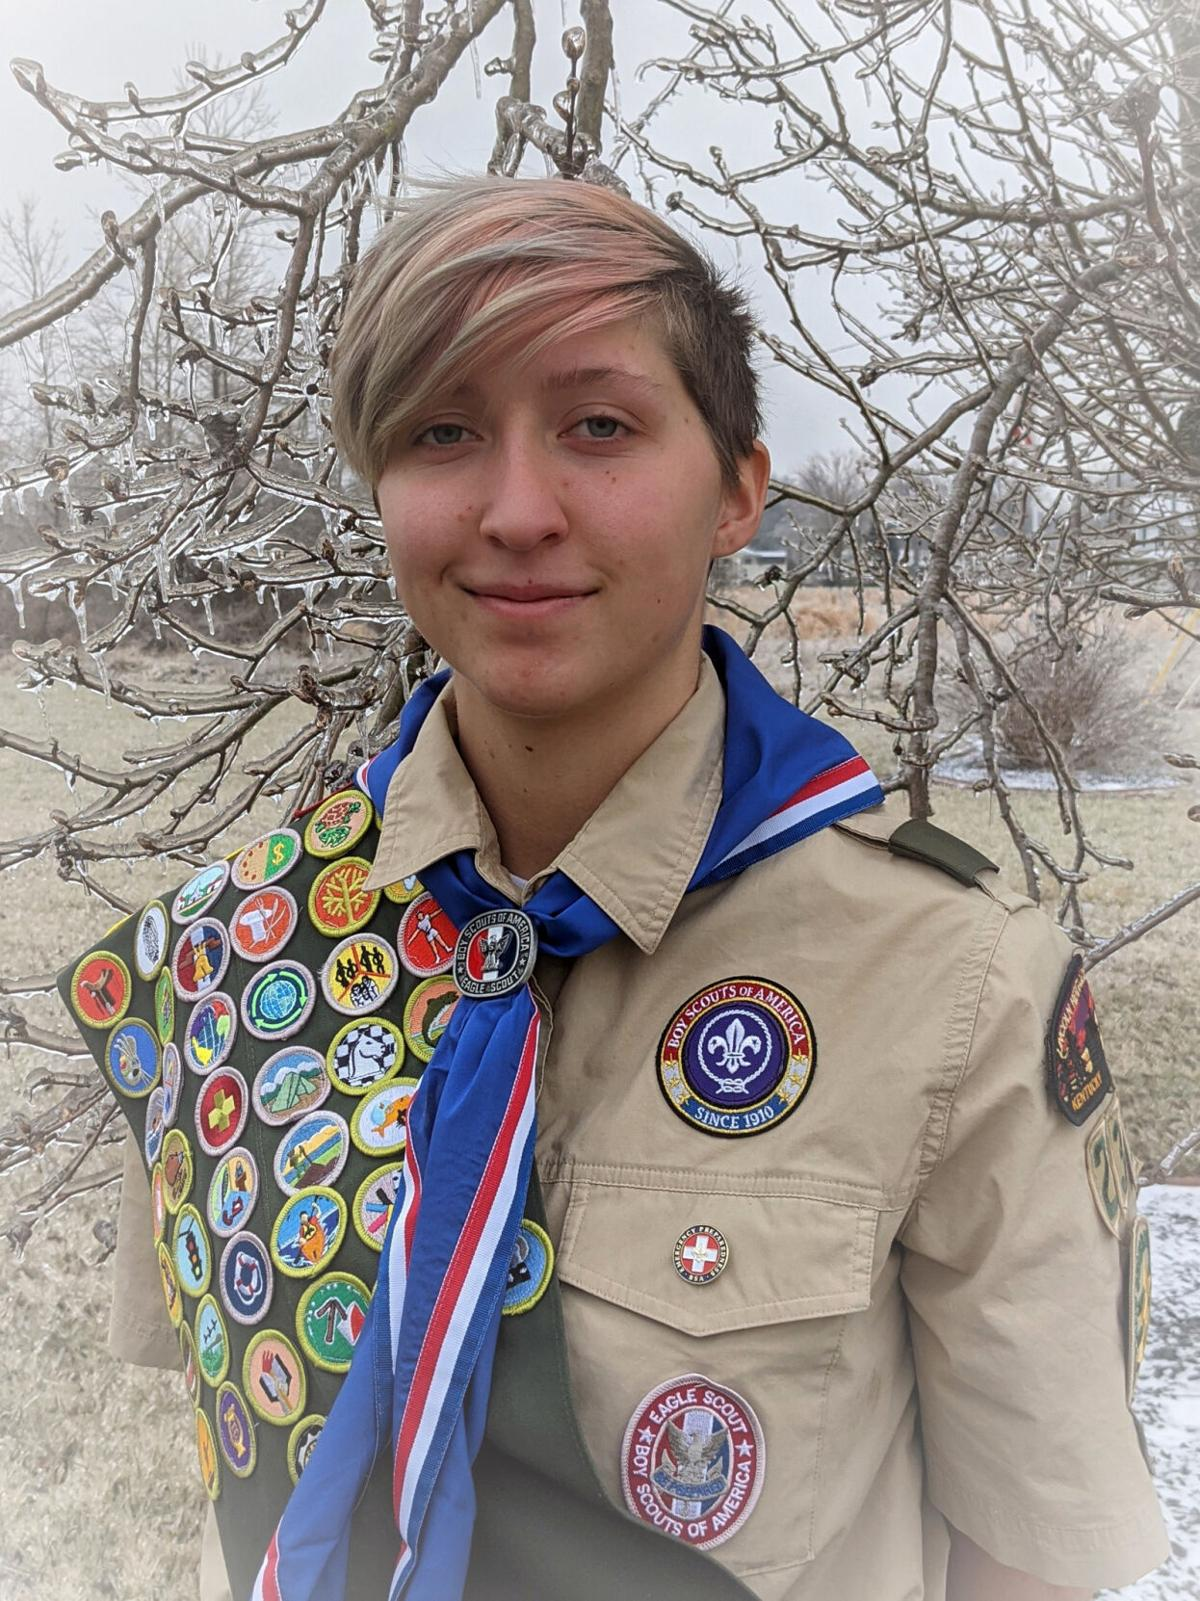 Rineyville girl earns Eagle Scout recognition